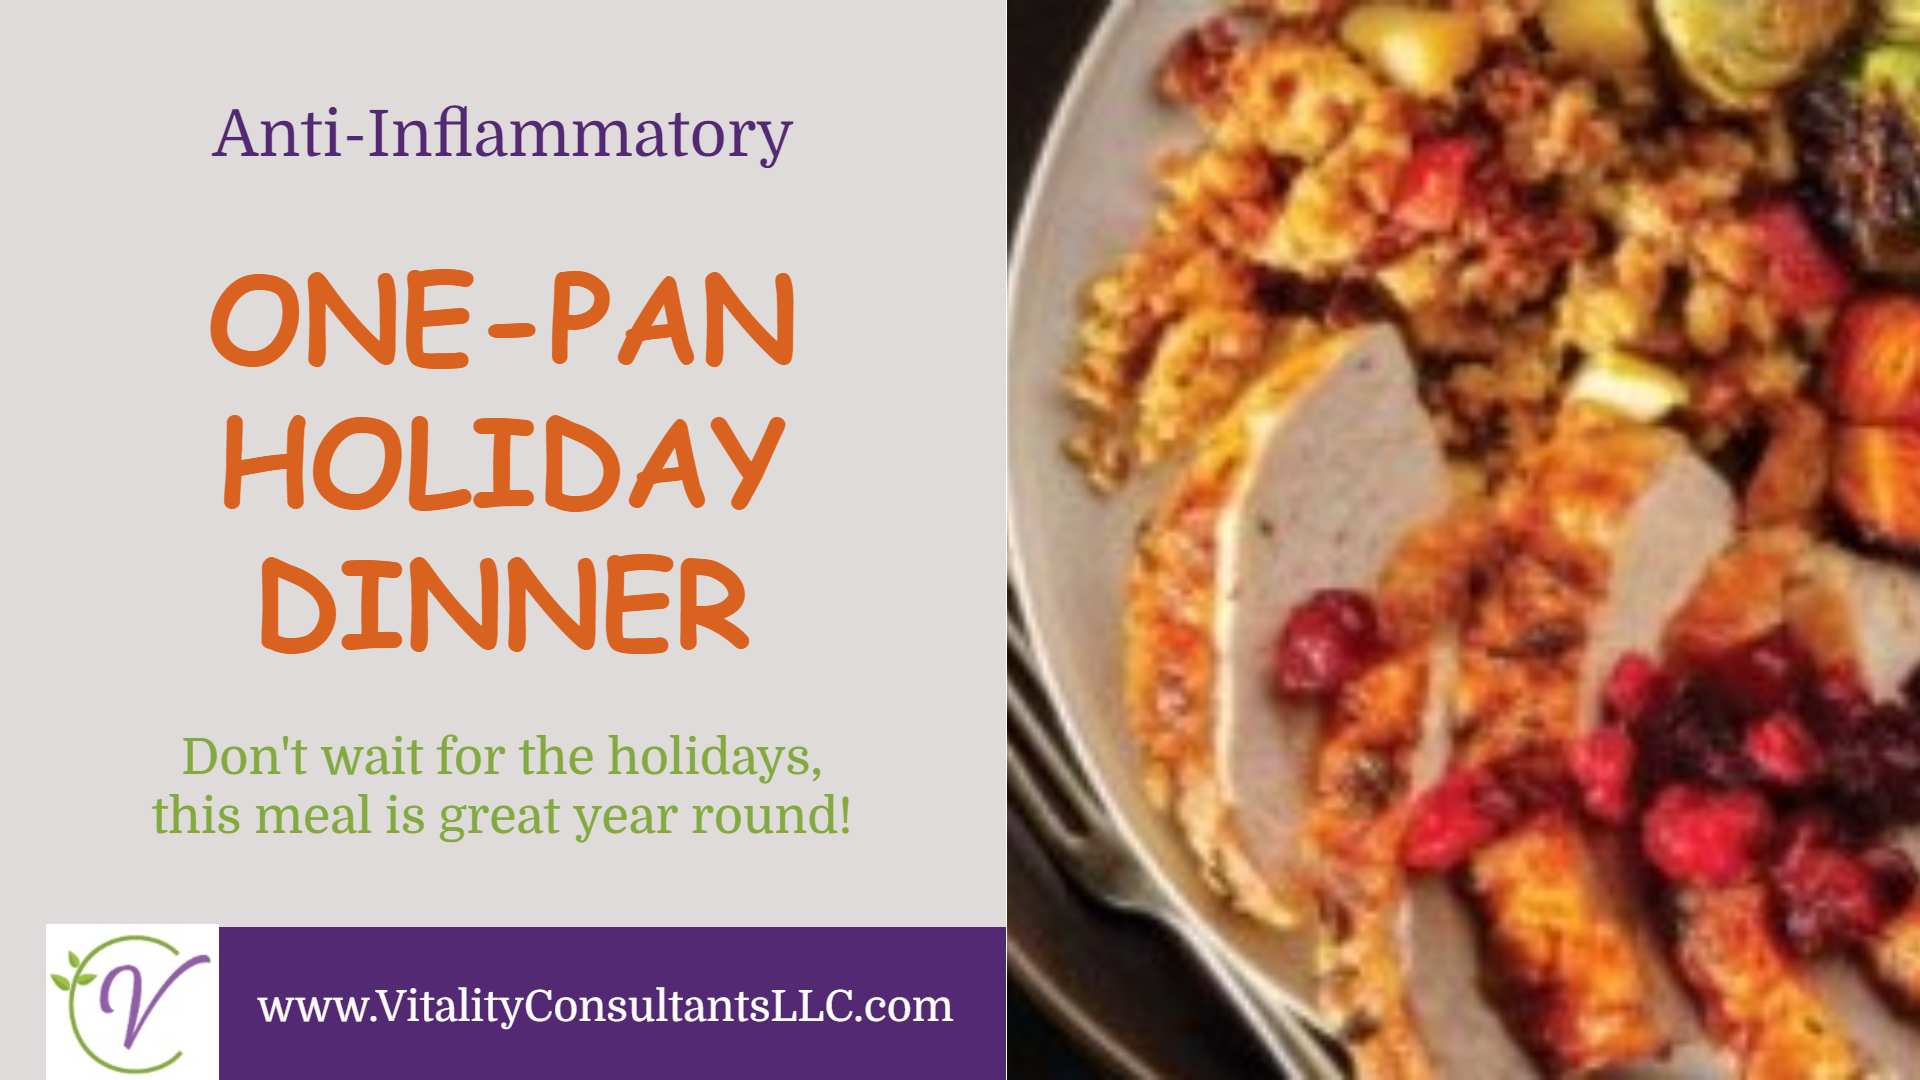 One-Pan Holiday Dinner